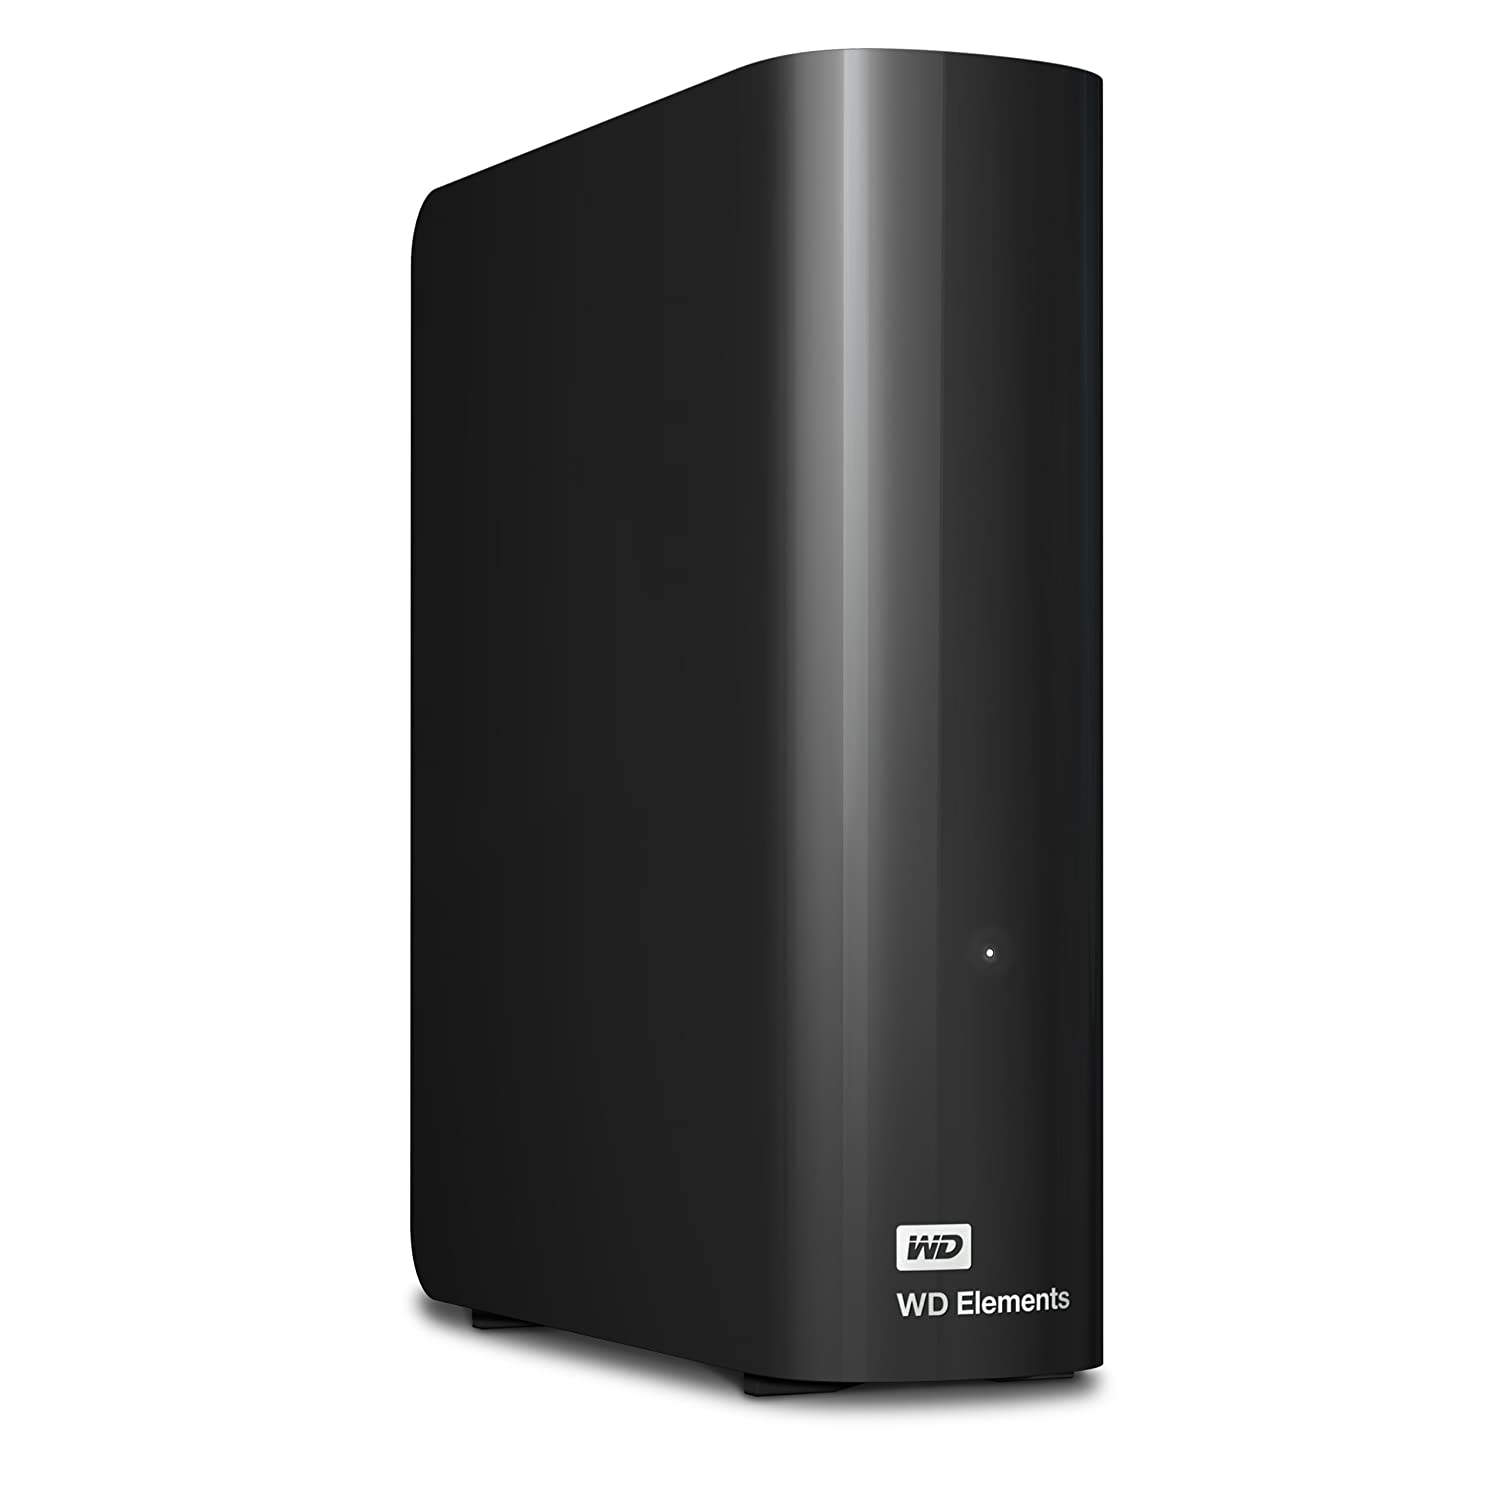 Western Digital Elements 3.0 - Disco duro externo de 4 TB (SATA III, 5400 RPM, USB 3.0), negro